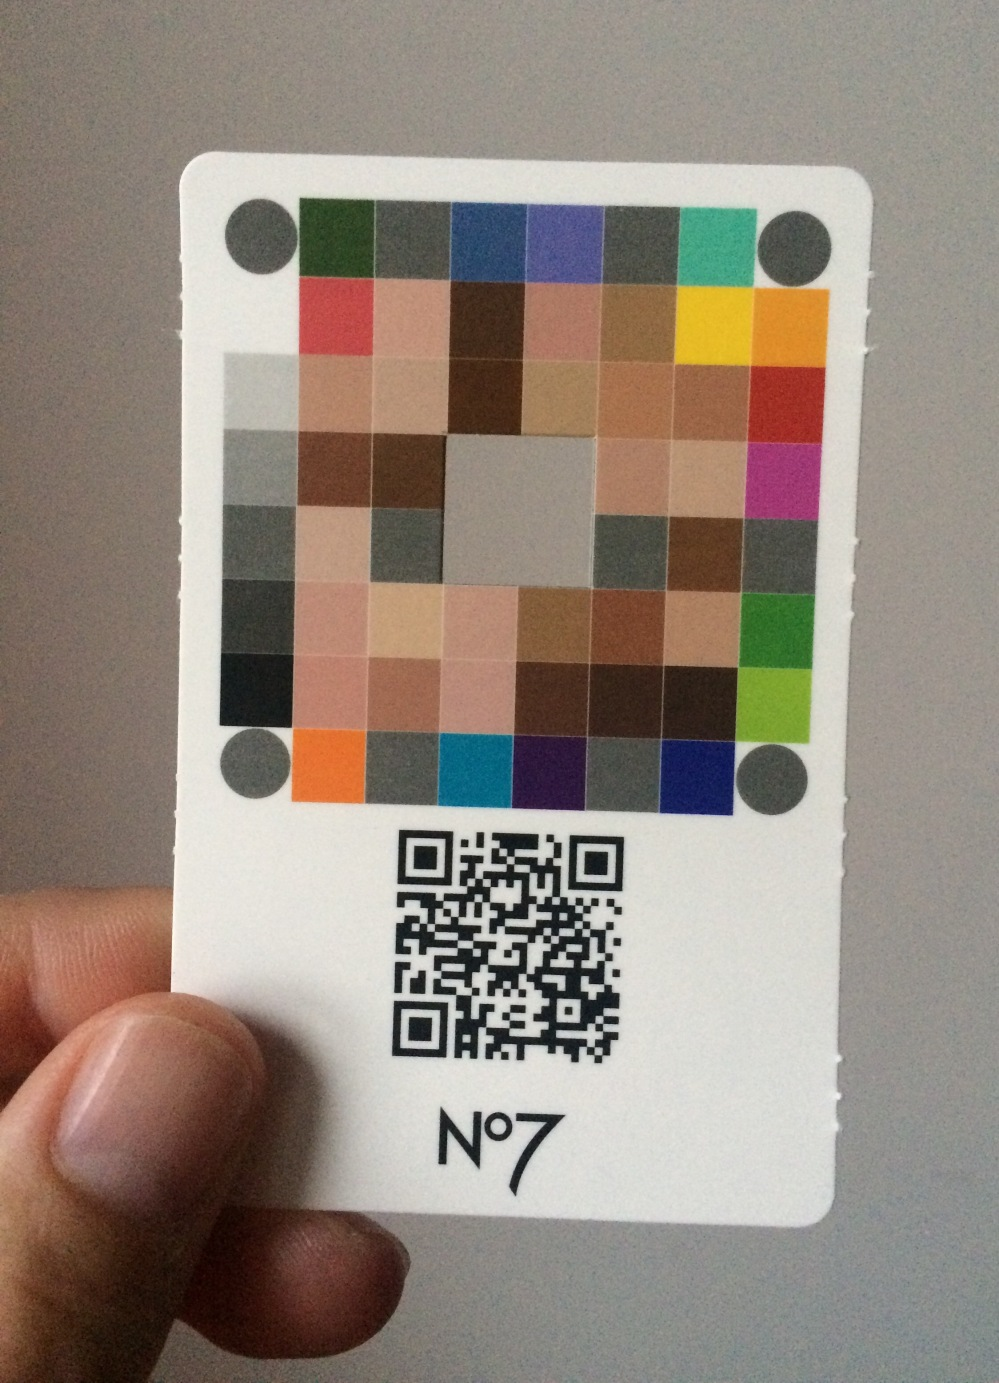 boots no7 match. made foundation shade selection app card, showing a black and white square and a aquare made up of a mosiac of differednt colours with a square hole in the middle